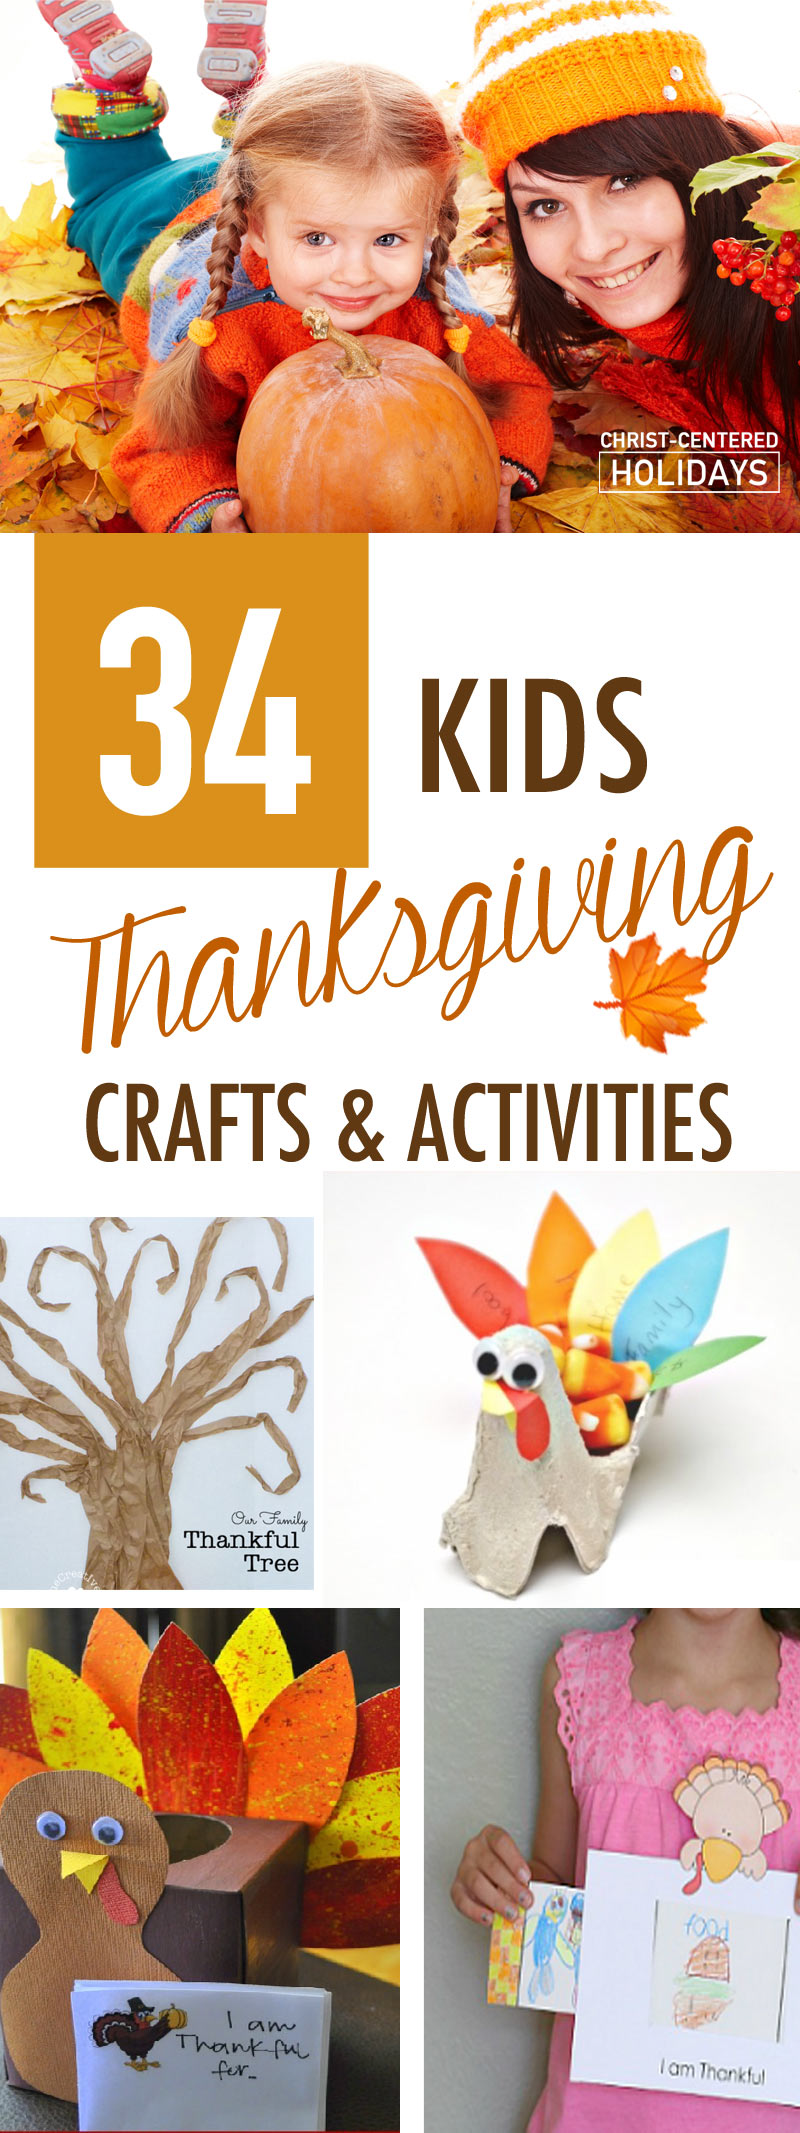 thanksgiving crafts kids | thanksgiving crafts kids printable | easy thanksgiving crafts kids | thanksgiving crafts kids make | thanksgiving kids | kids thanksgiving crafts | thanksgiving craft kids | thanksgiving crafts children | children thanksgiving crafts | fun thanksgiving crafts kids | easy thanksgiving crafts kids make | pinterest thanksgiving crafts kids | thankful tree printable | thankful tree craft | thanksgiving books kids | random acts of kindness ideas